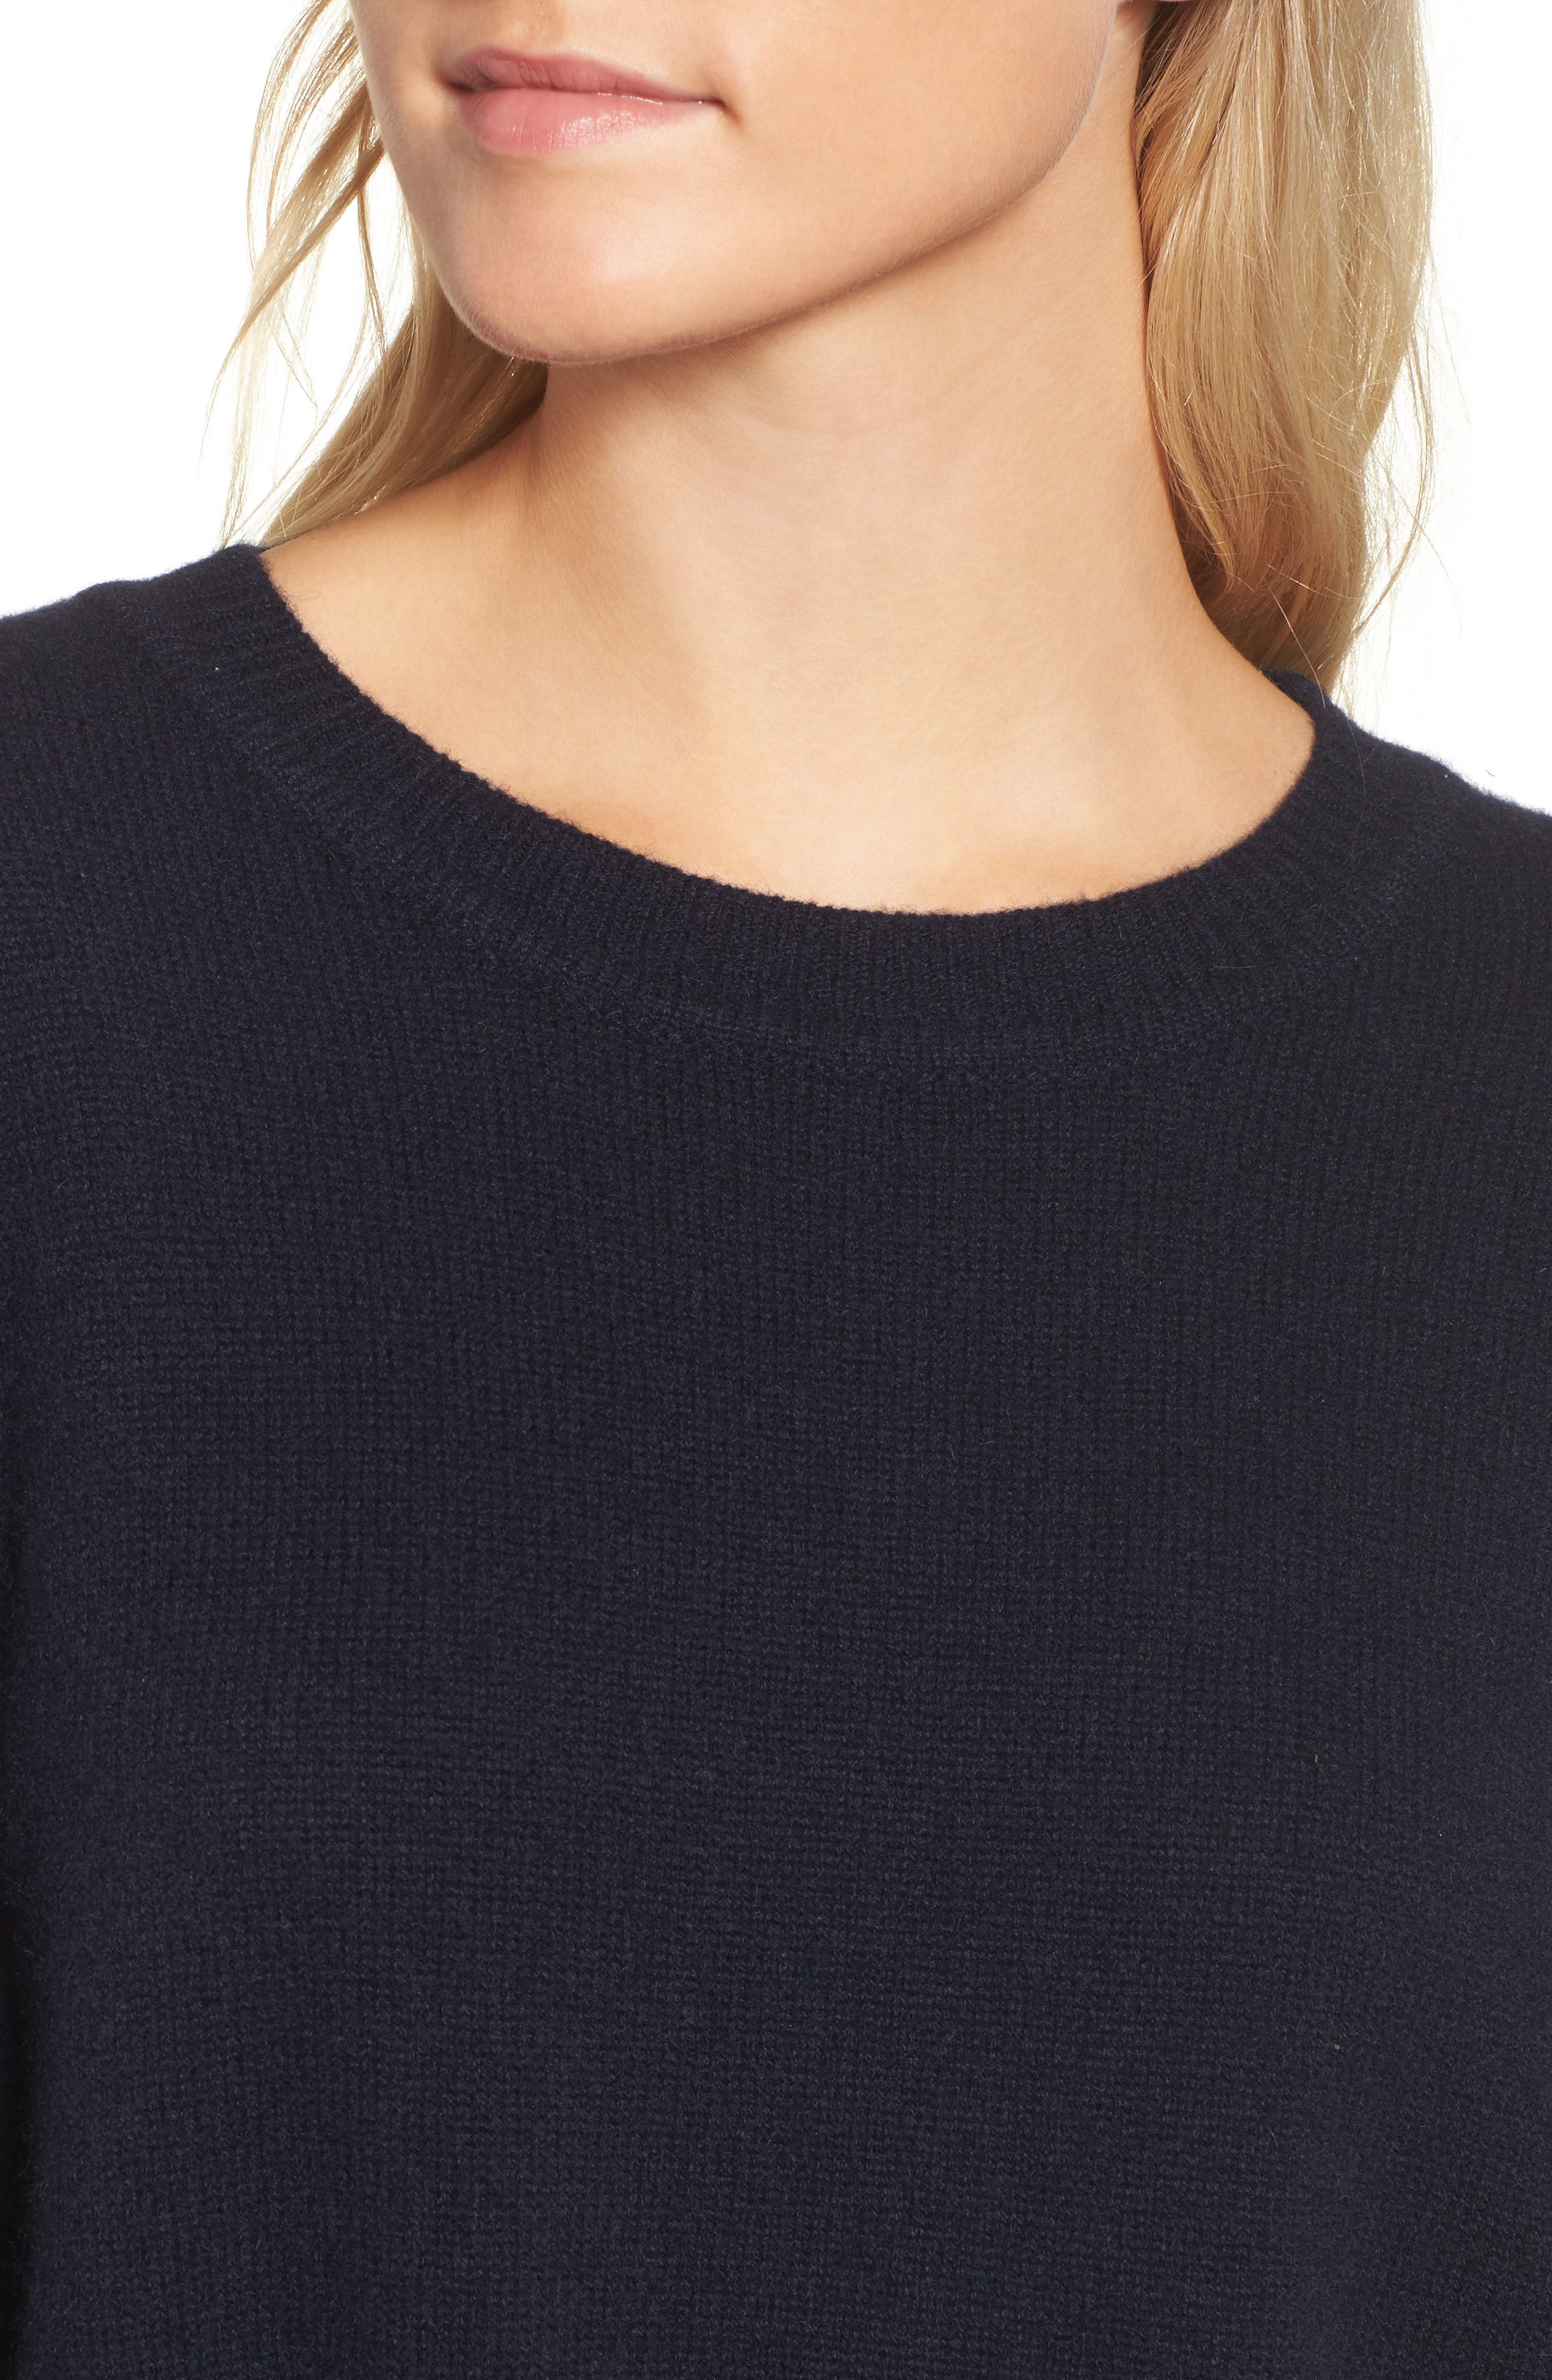 Oversize Cashmere Sweater,                             Alternate thumbnail 4, color,                             415